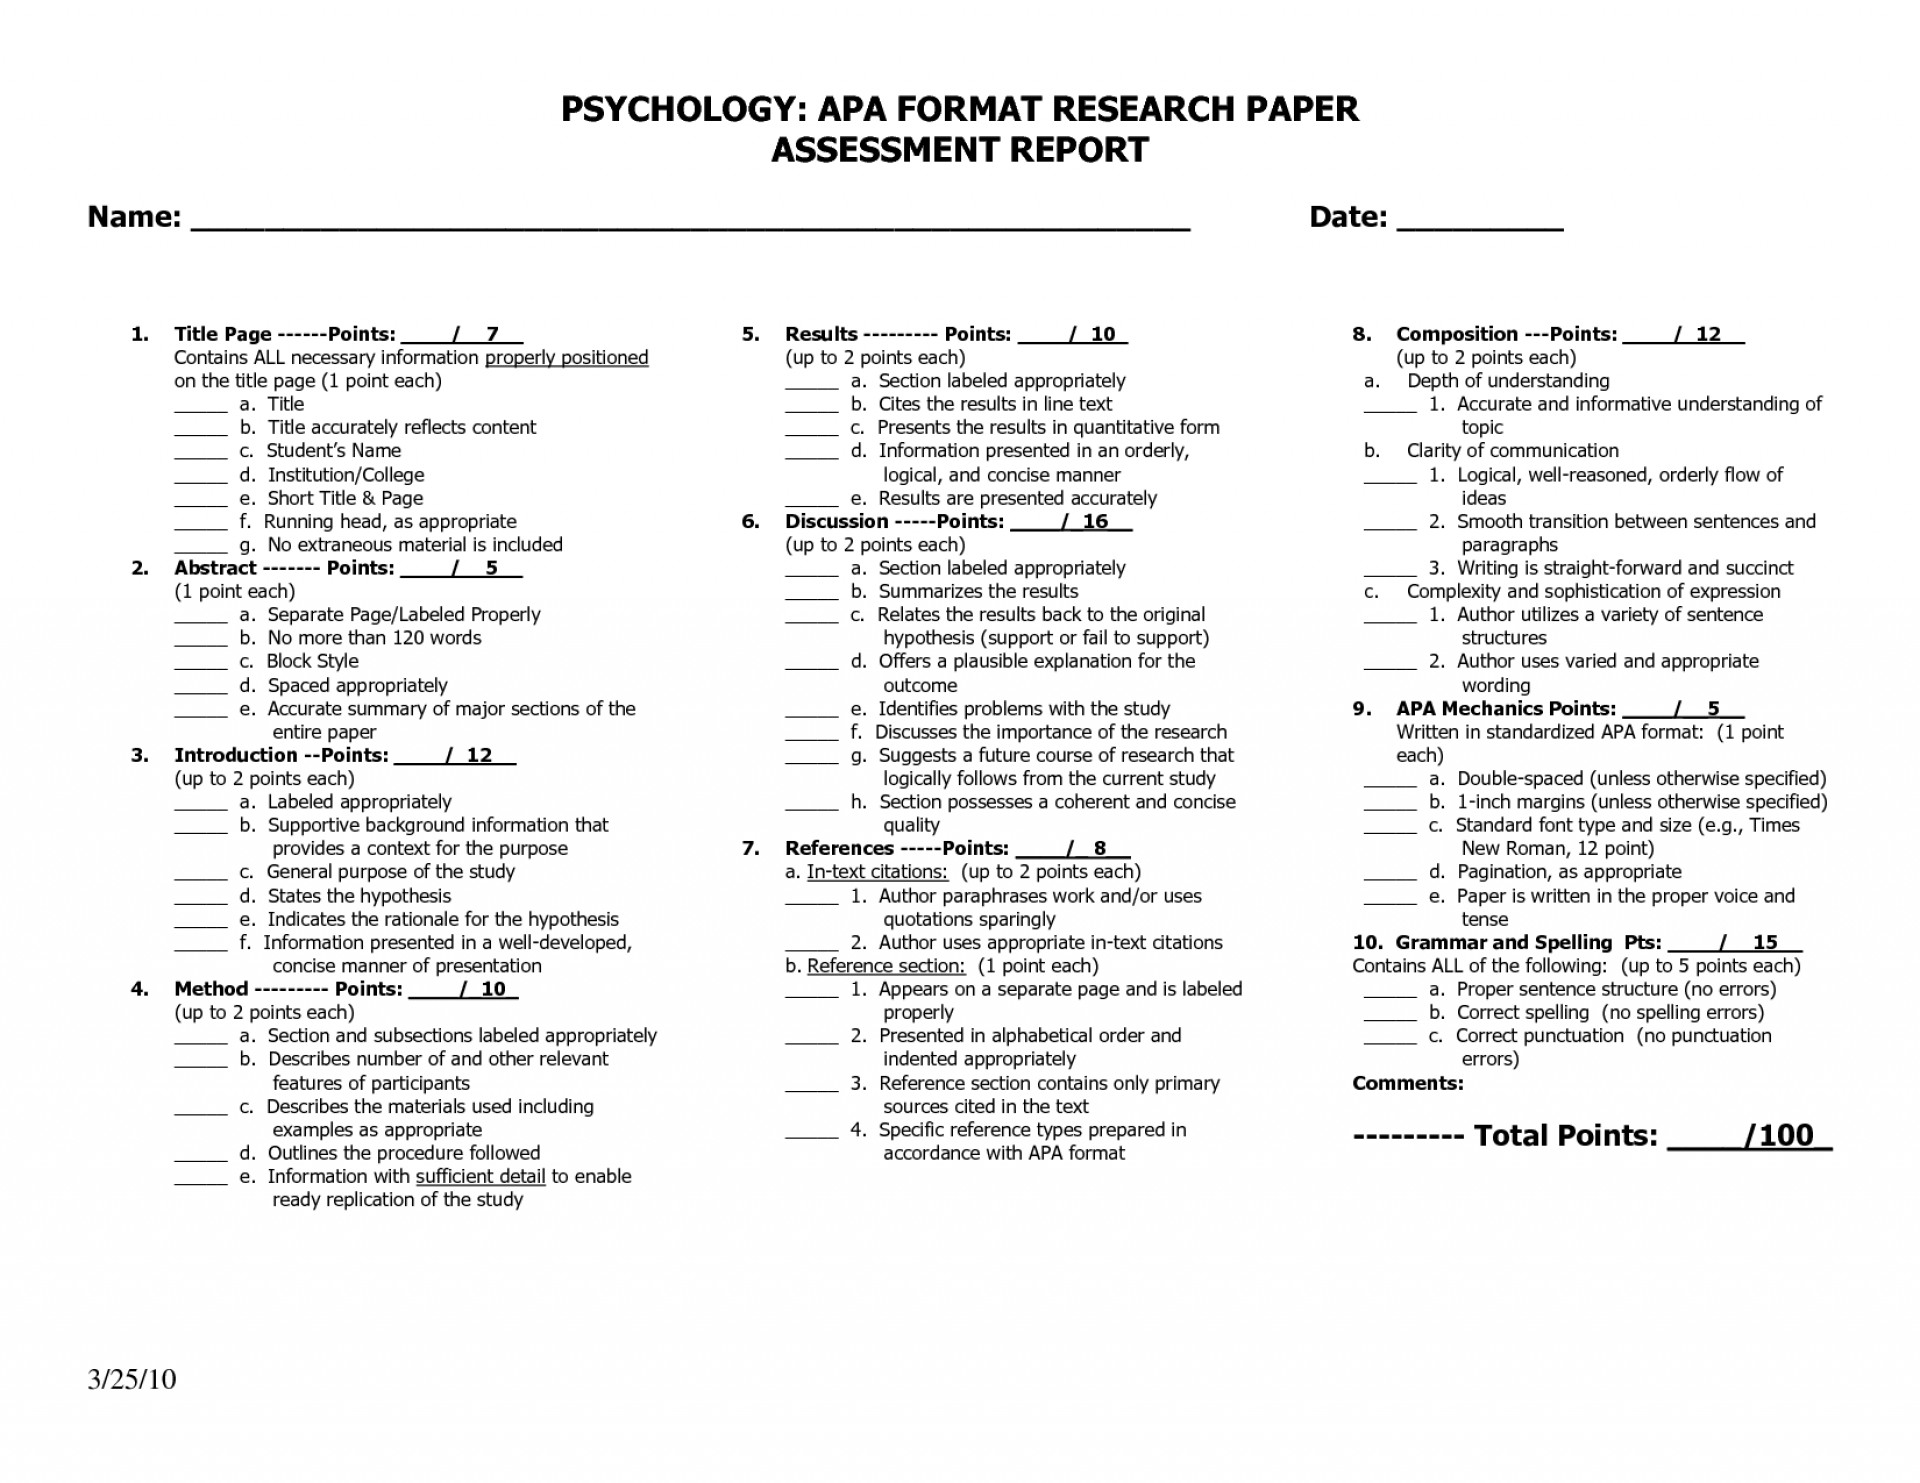 006 Apa Format For Psychology Research Archaicawful Paper 1920